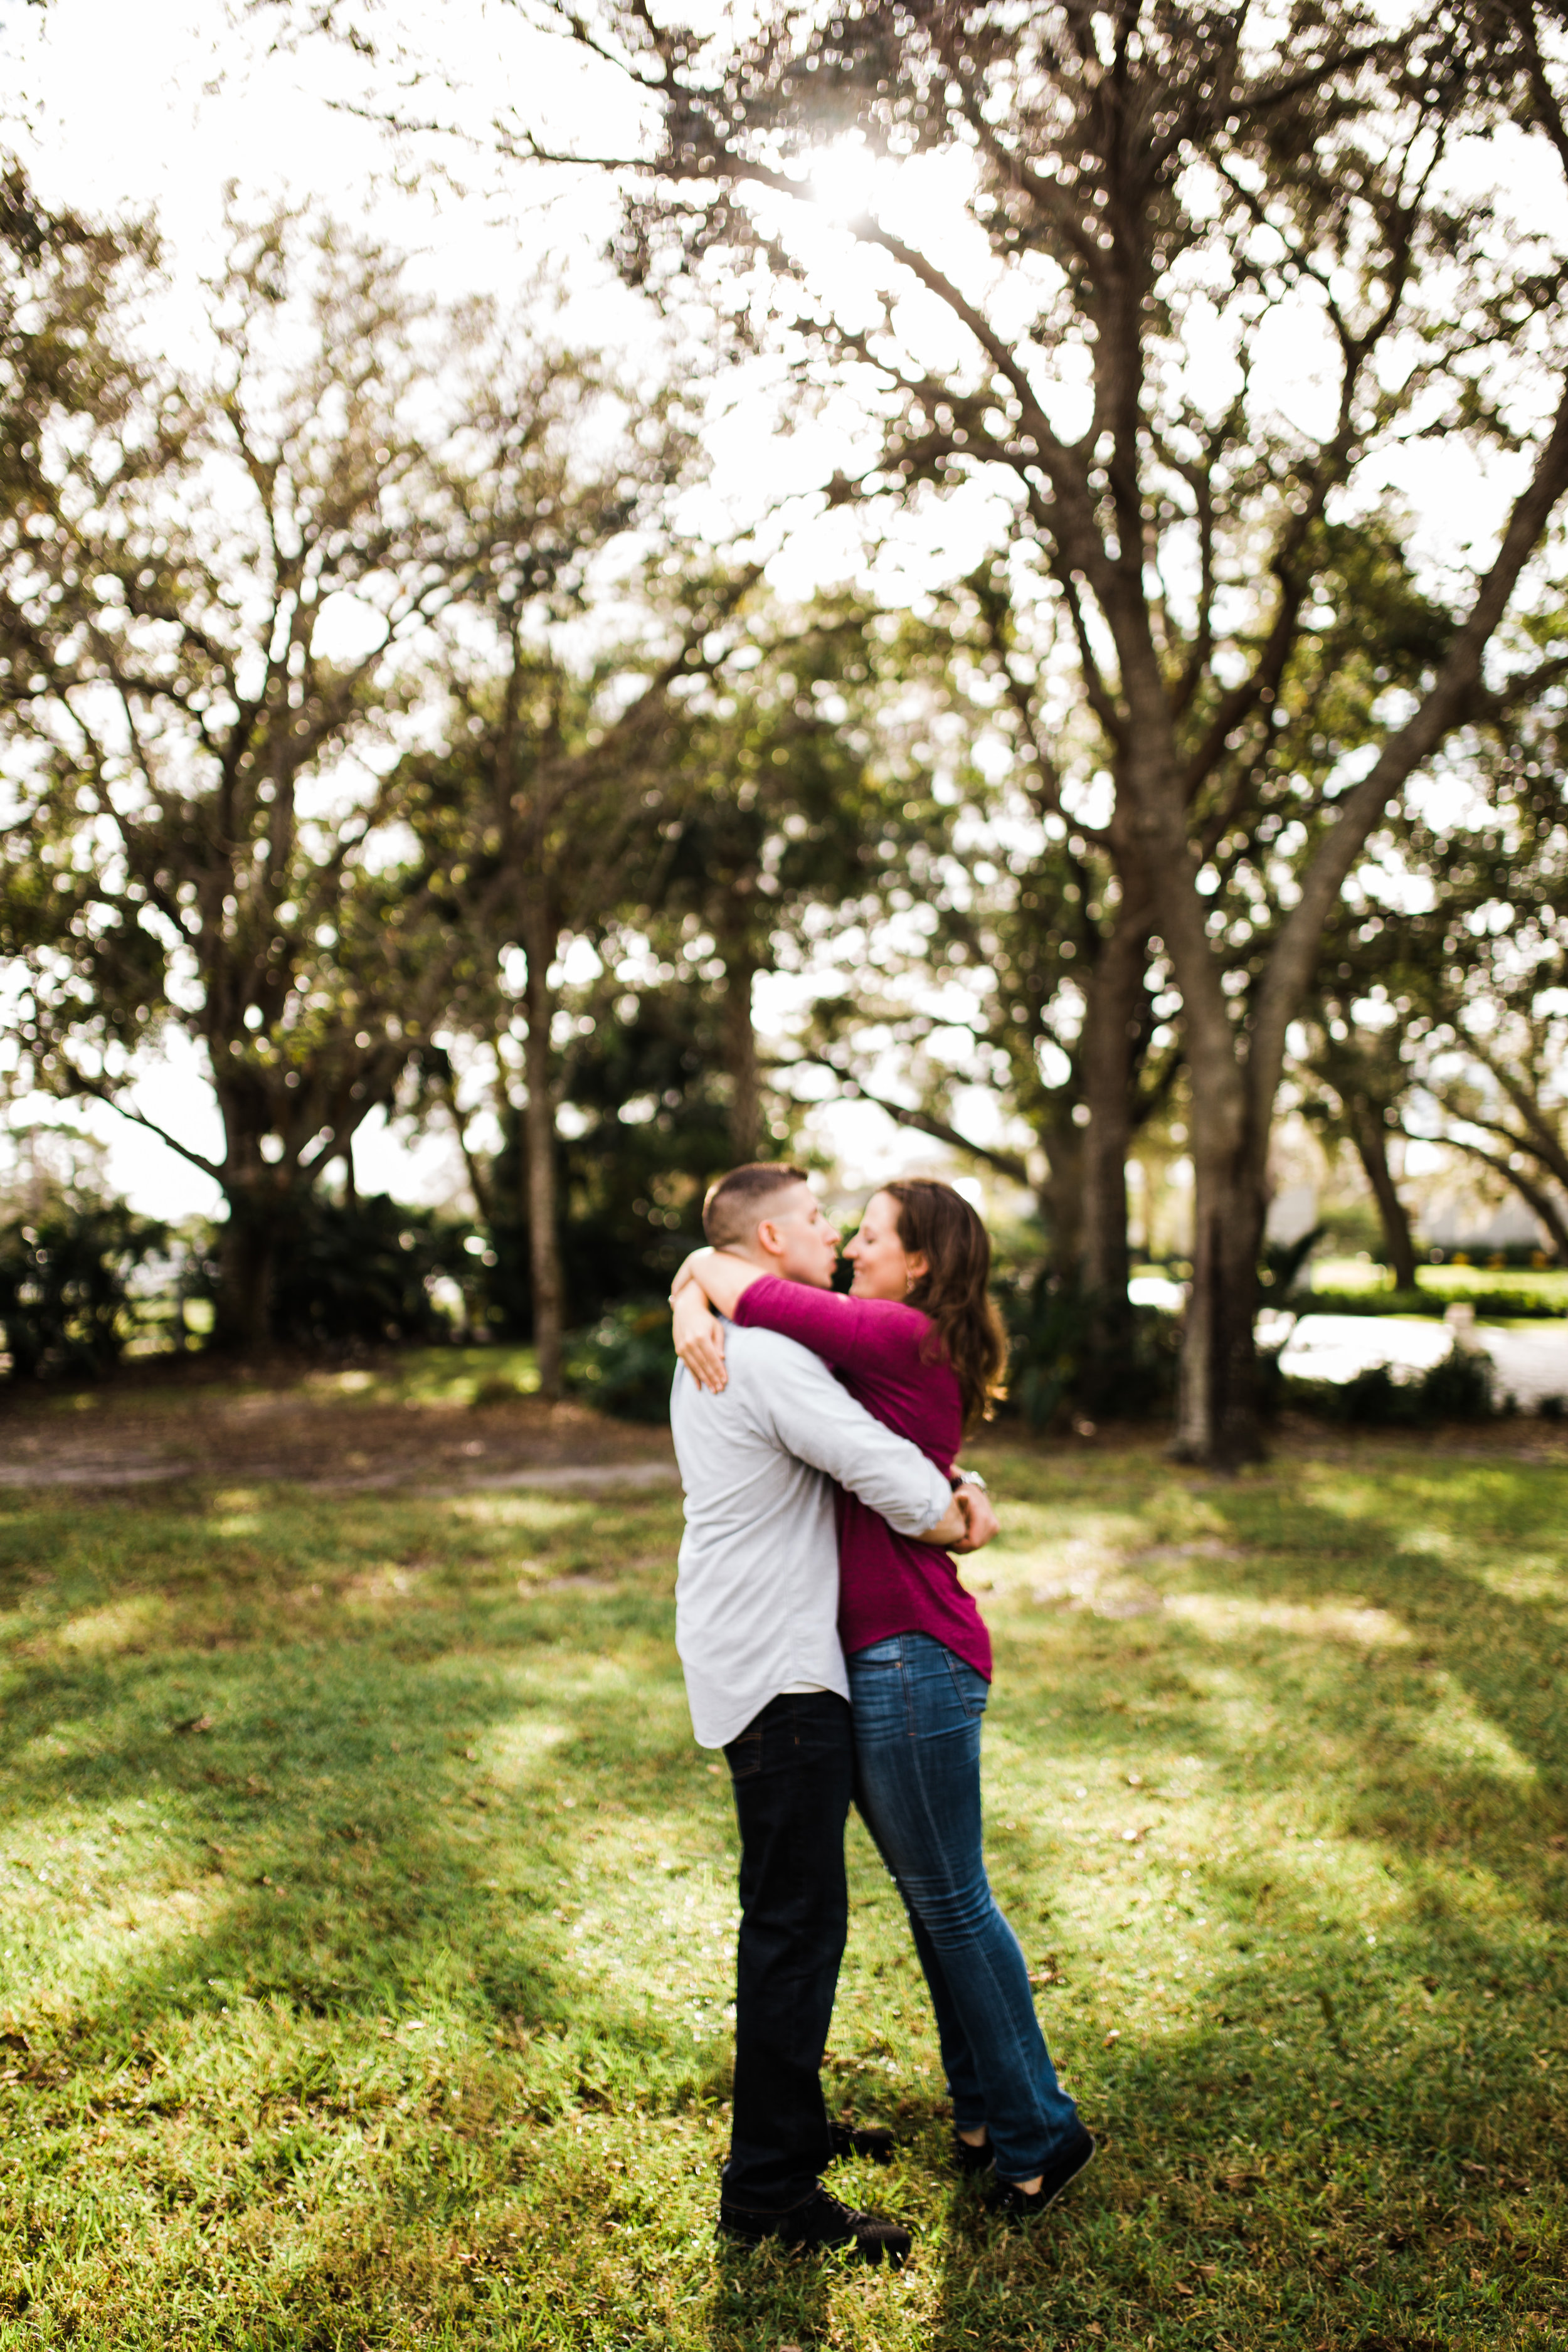 2017.09.22 Lindsay and Joey Engagement Session Up The Creek Farms (48 of 103).jpg